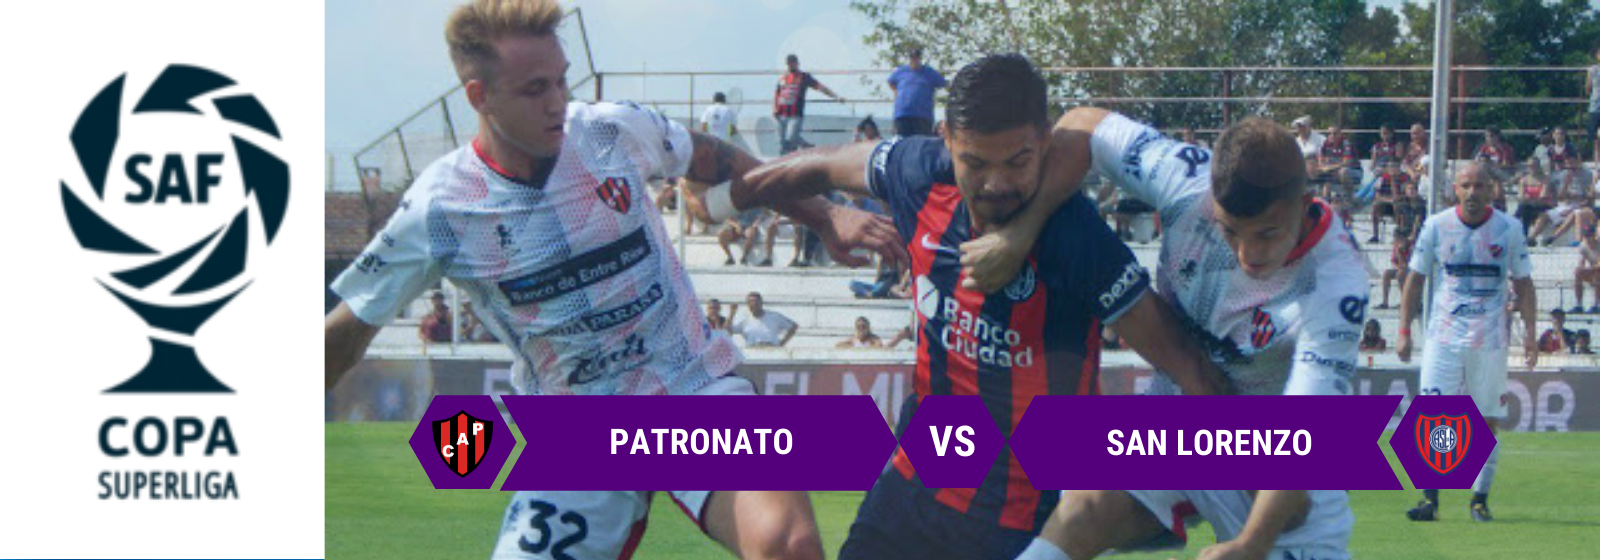 Asianconnect: Patronato vs San Lorenzo Odds for March 13, 2020